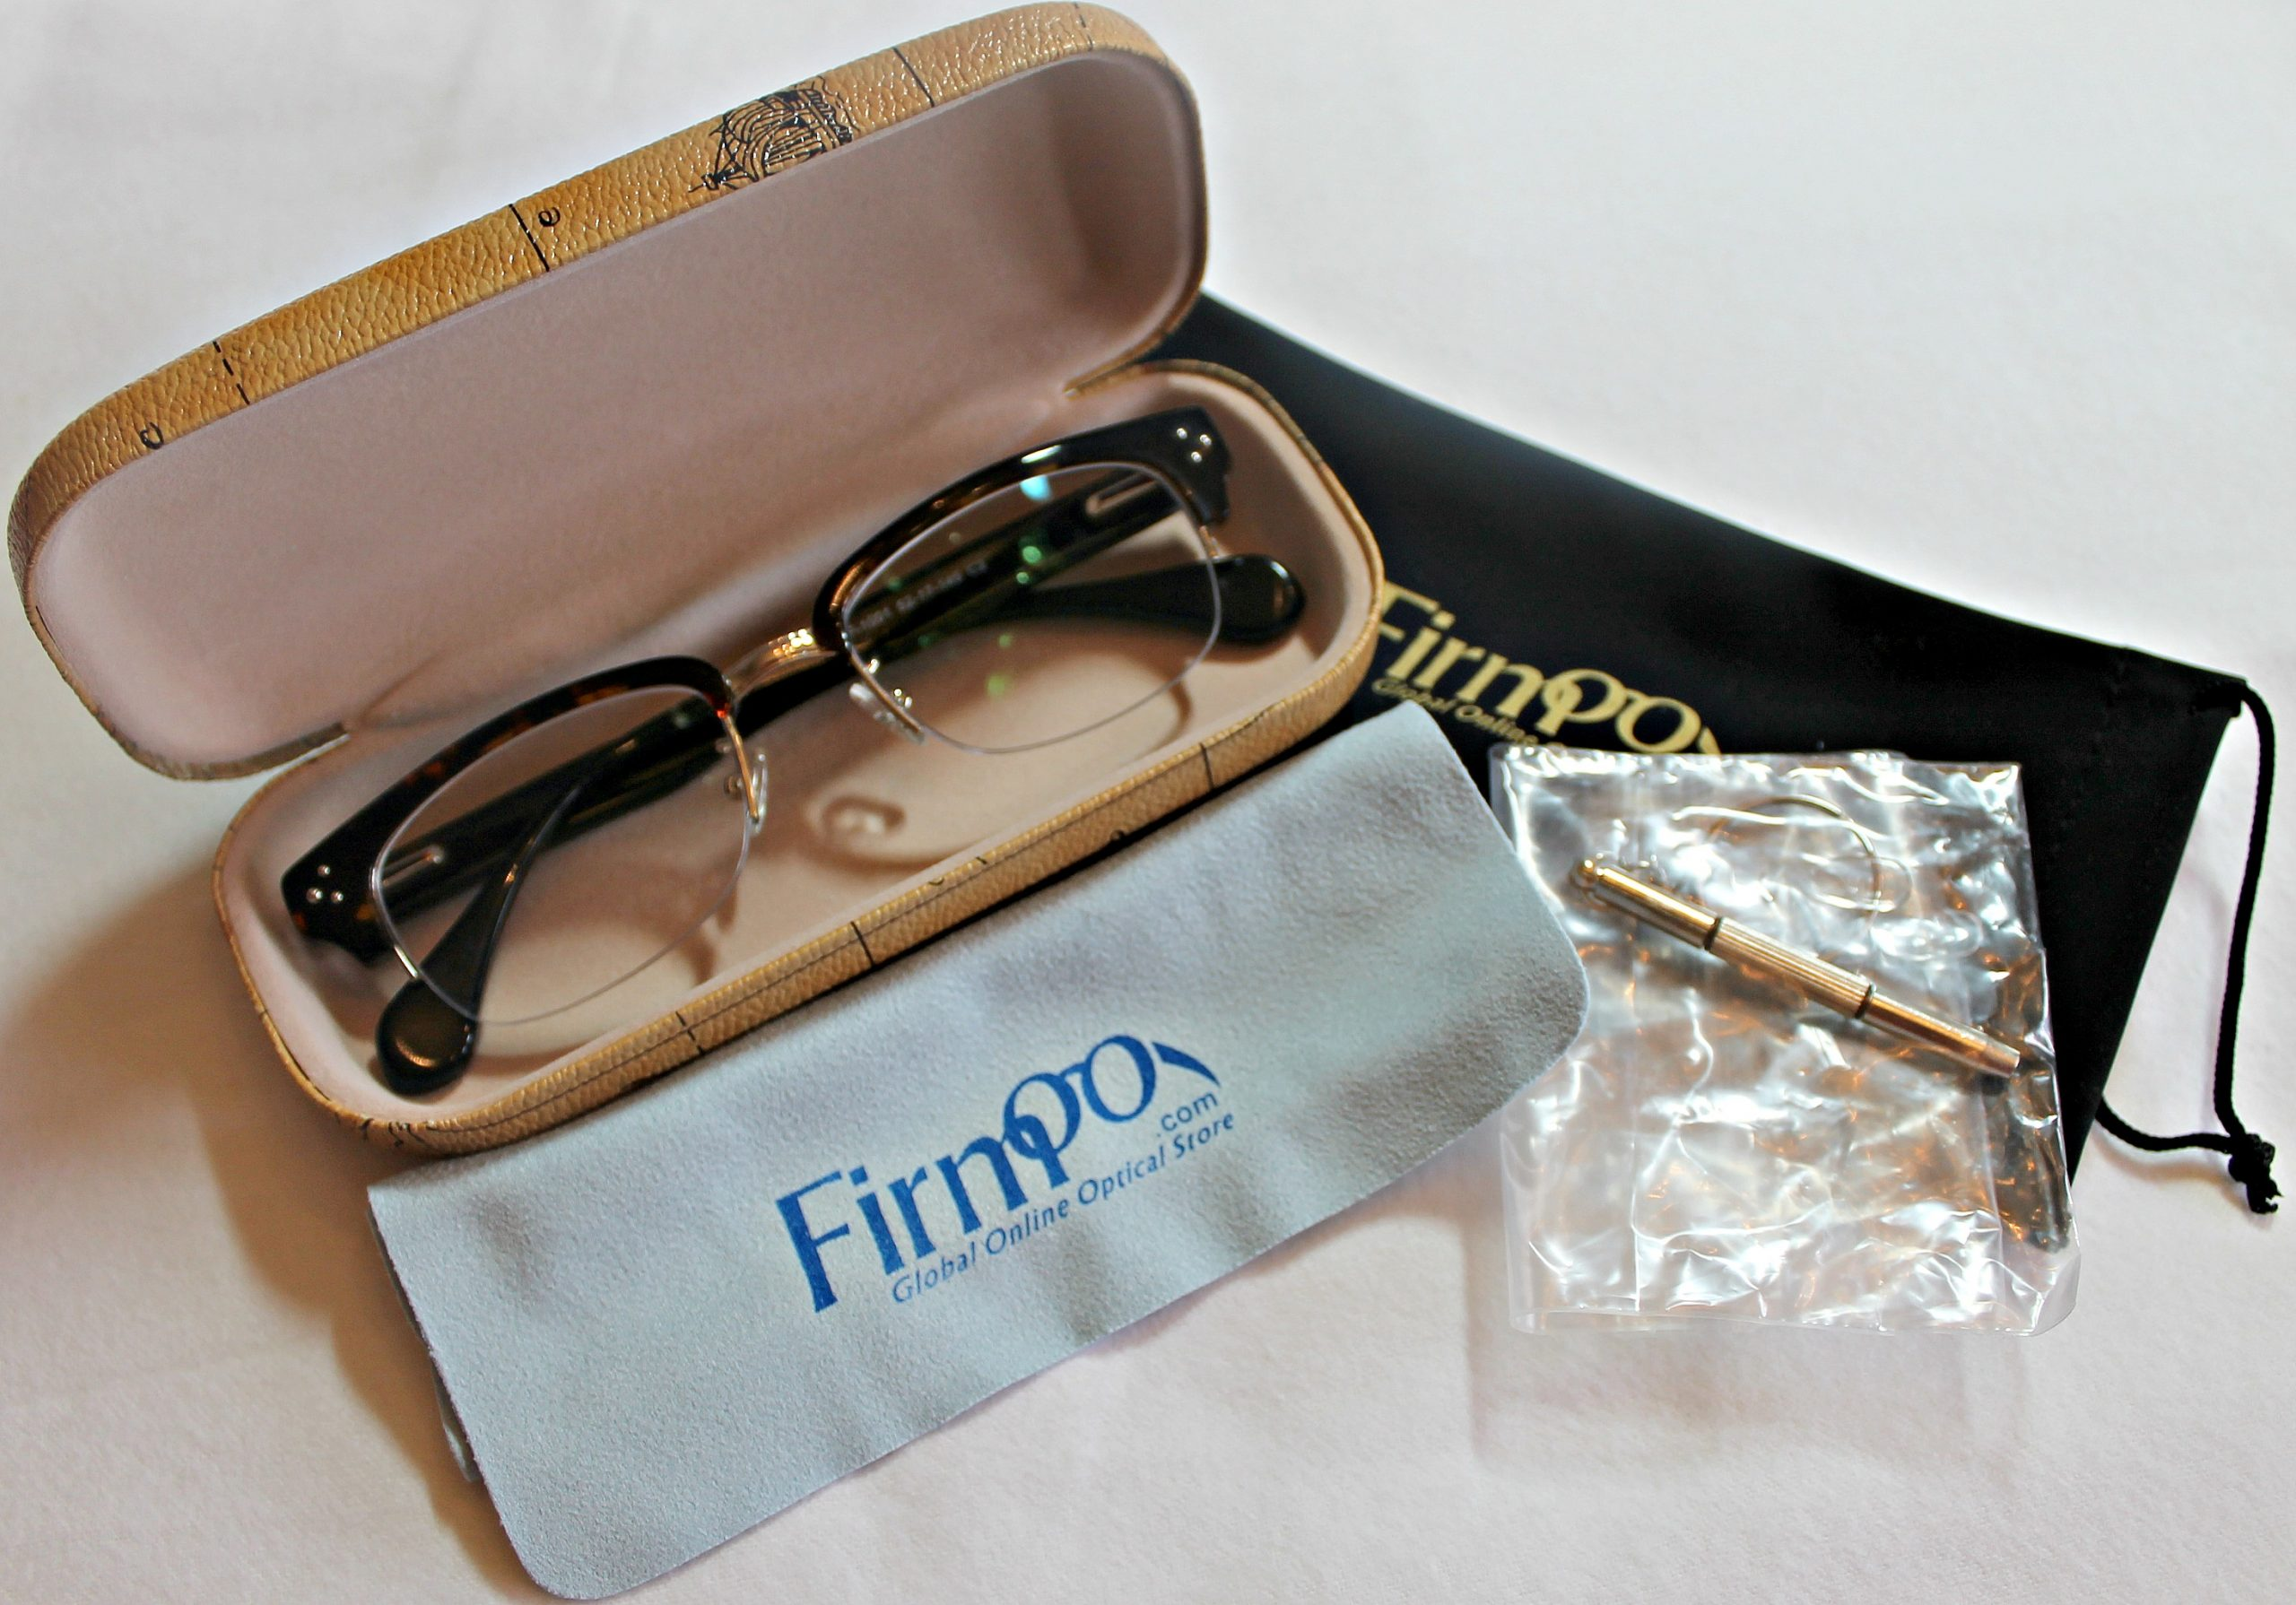 df13adef0a Firmoo Eyeglasses Review